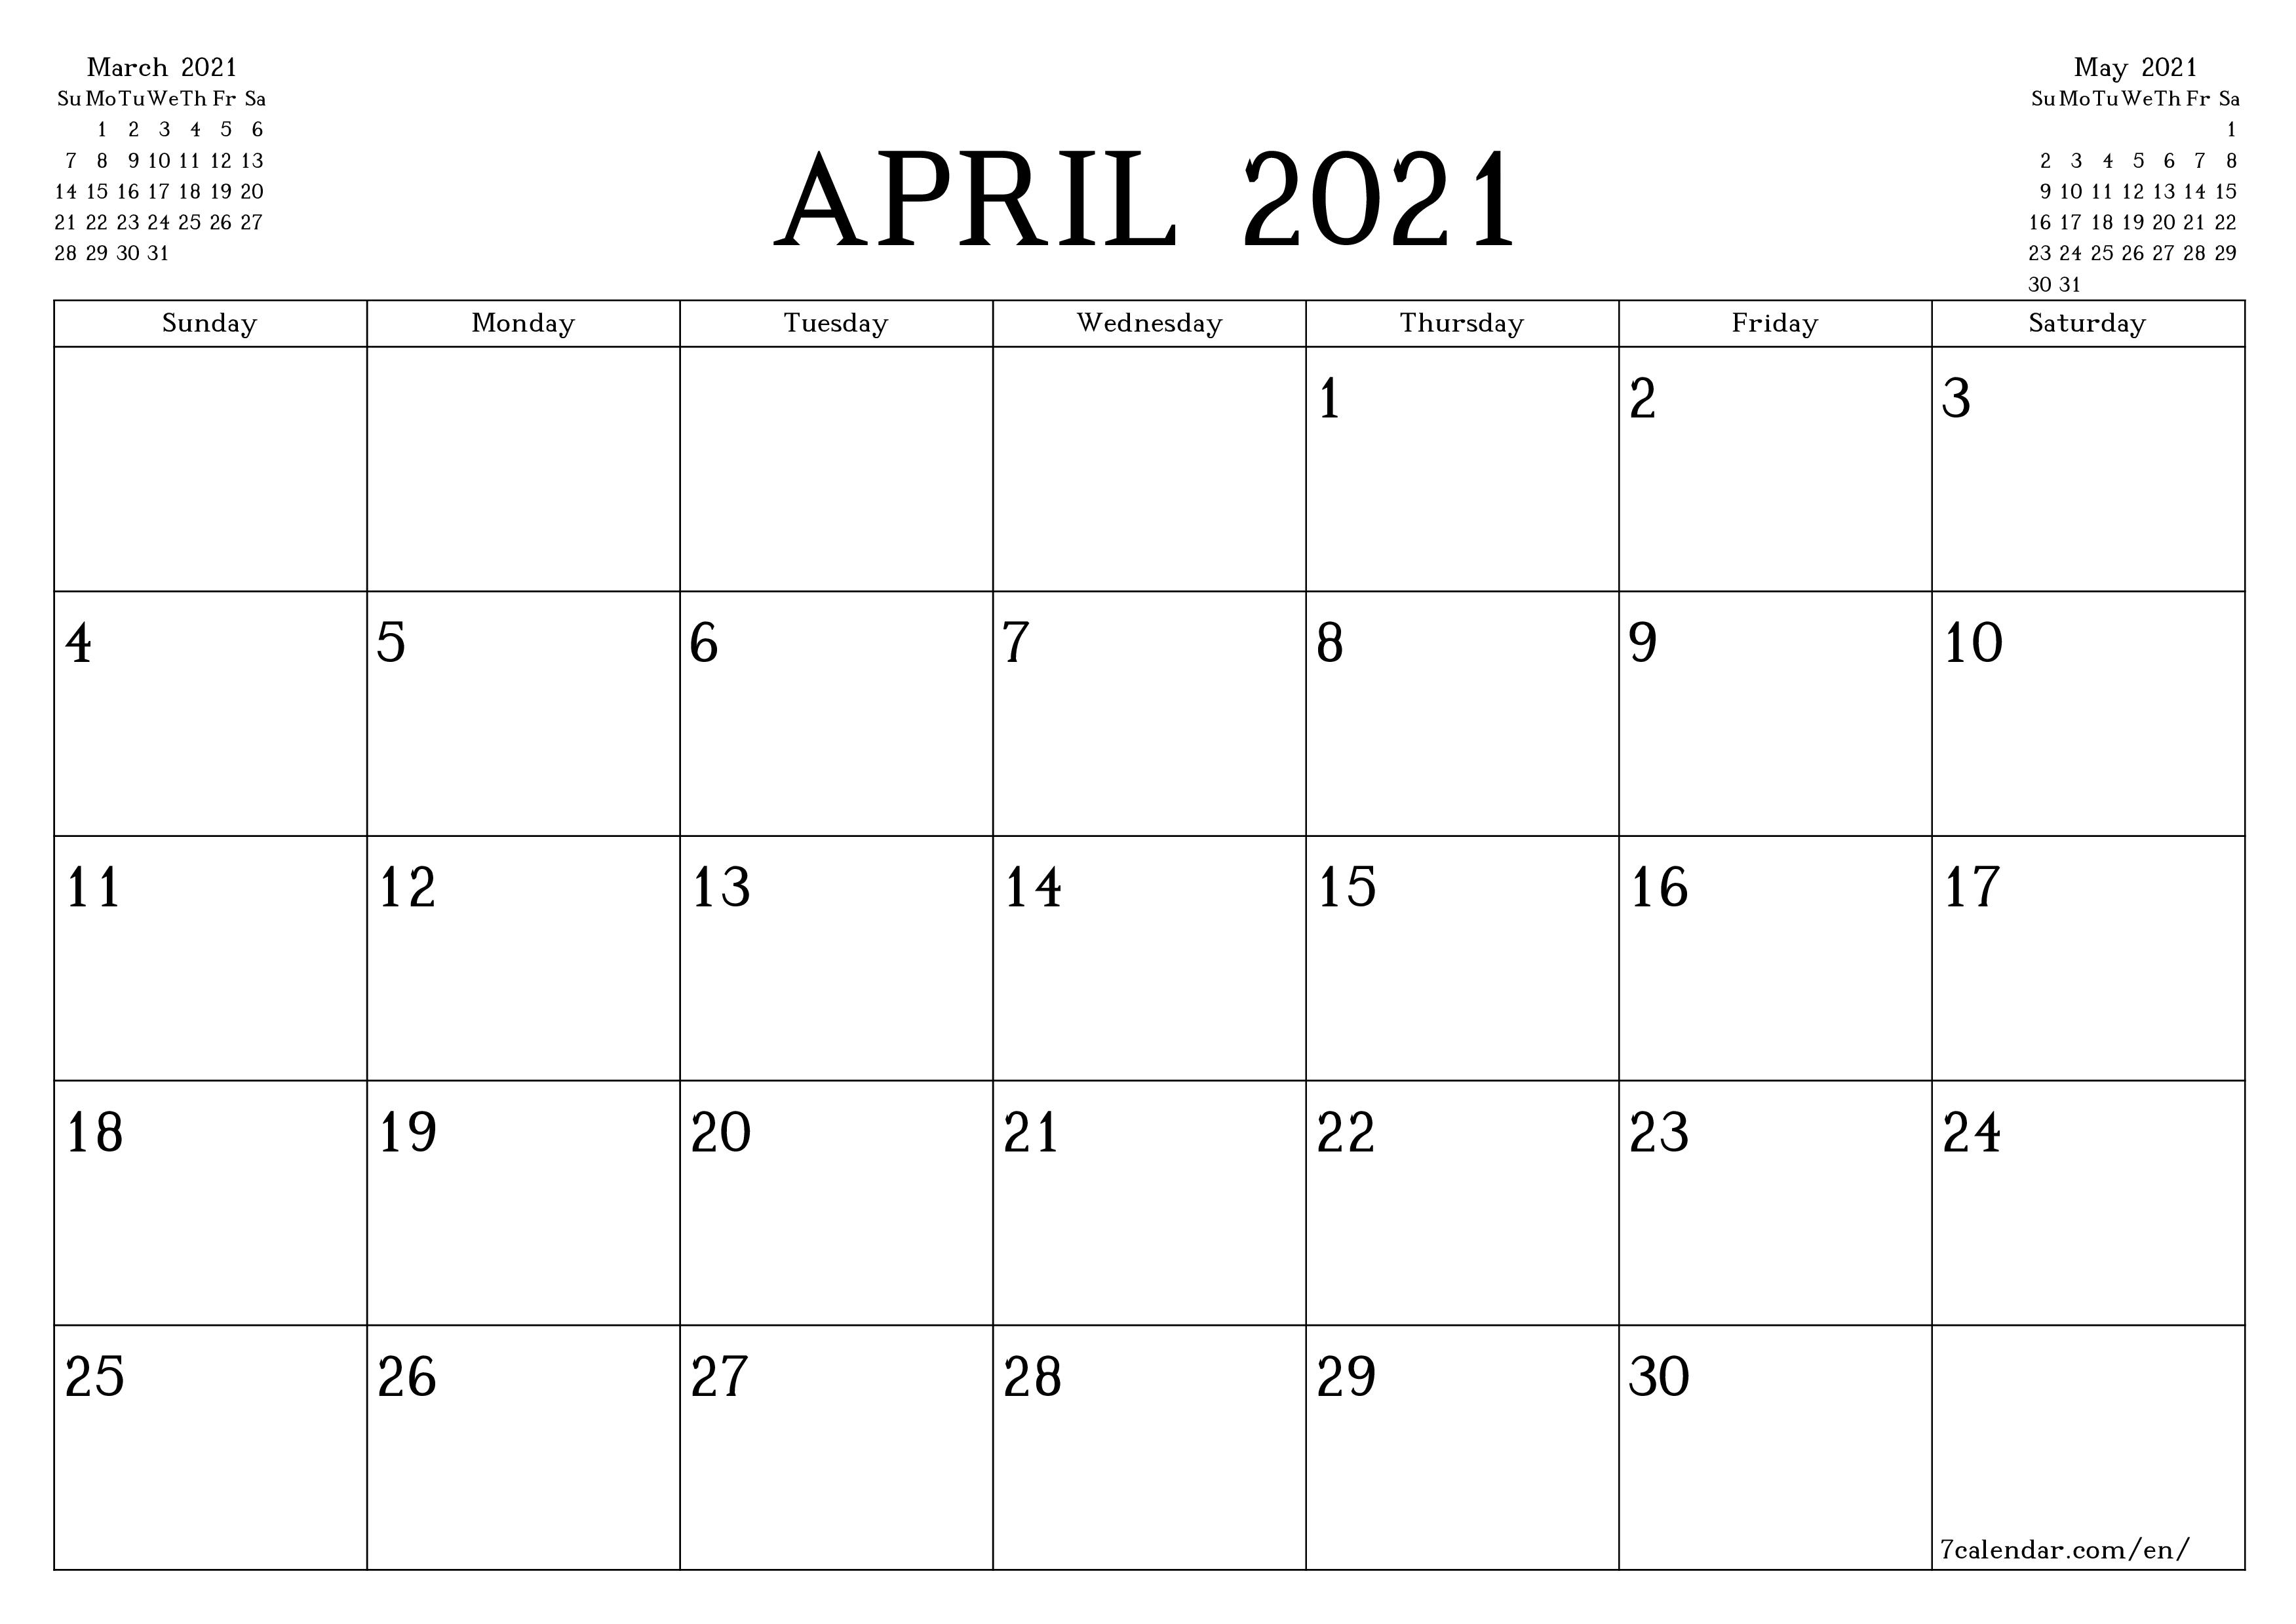 Blank monthly calendar planner for month April 2021 with notes save and print to PDF  - 7calendar.com